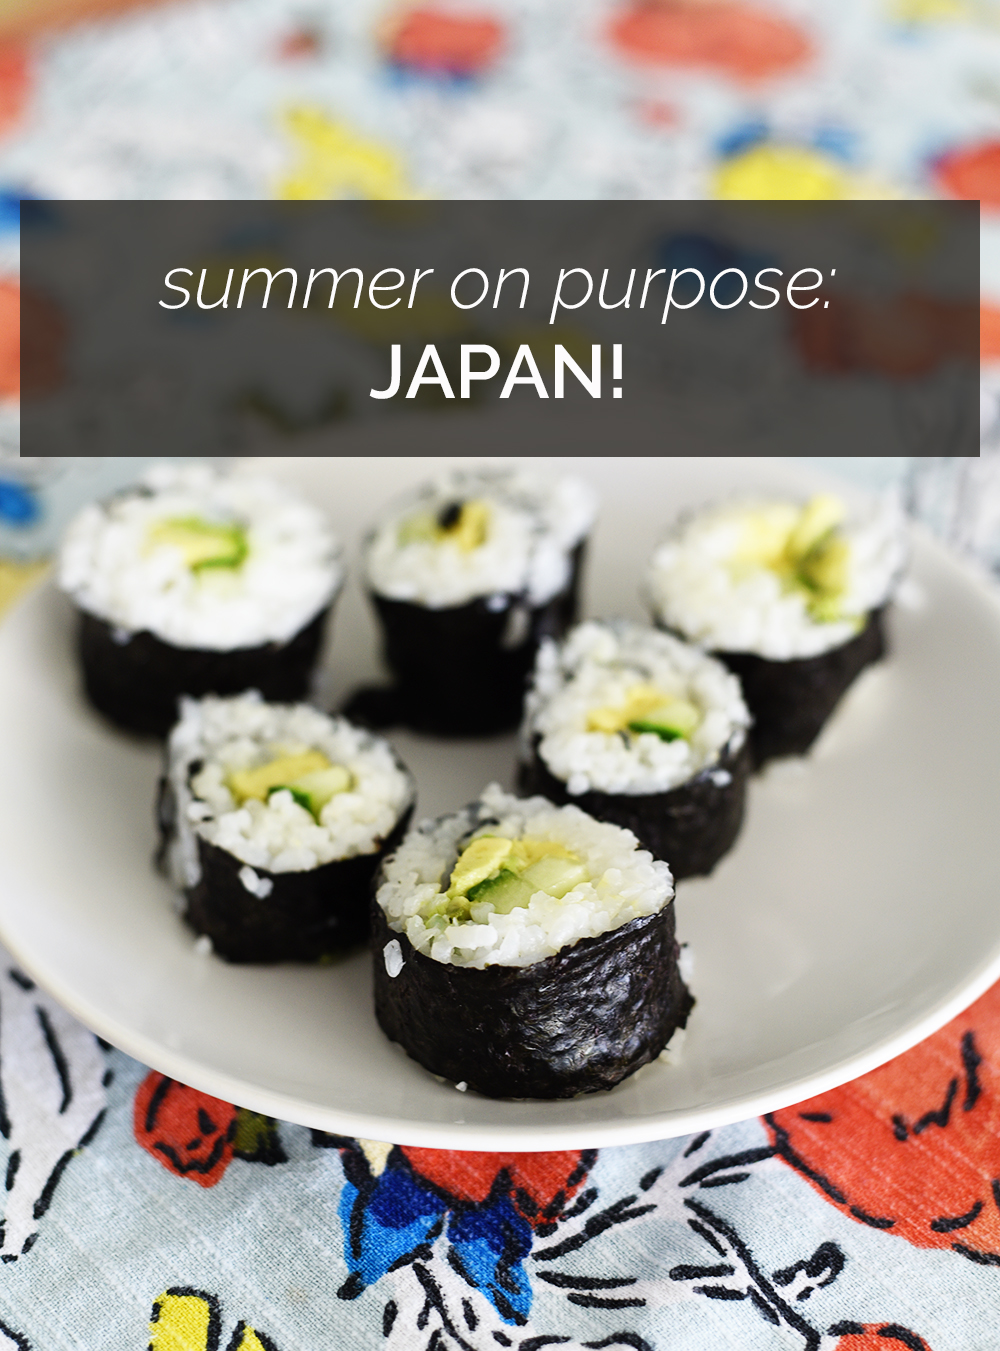 Summer on Purpose: Japan! We are picking one country each week to explore through books, arts, crafts, STEM projects, and other activities.